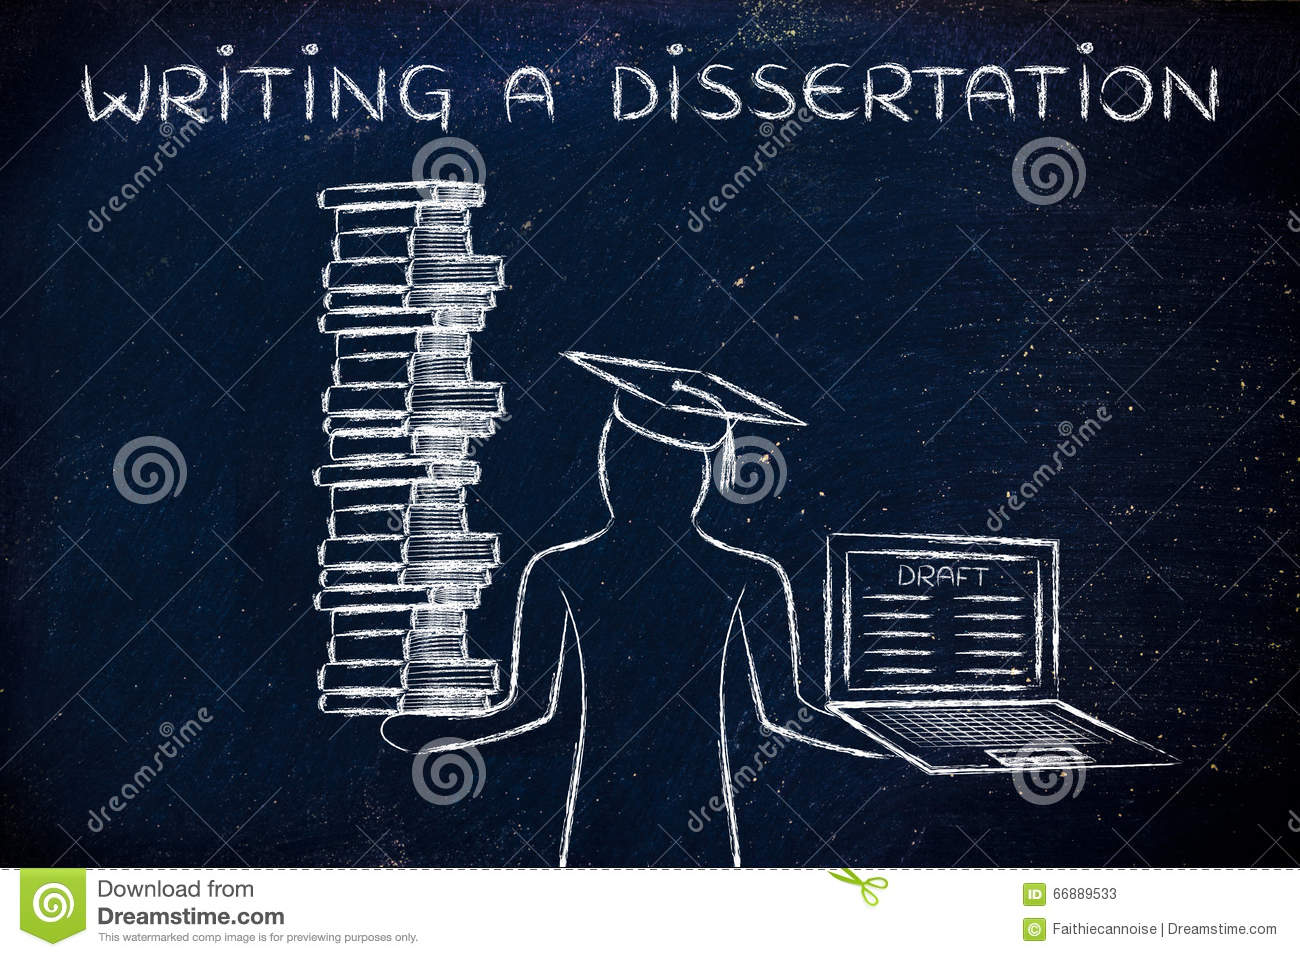 Writing dissertation book